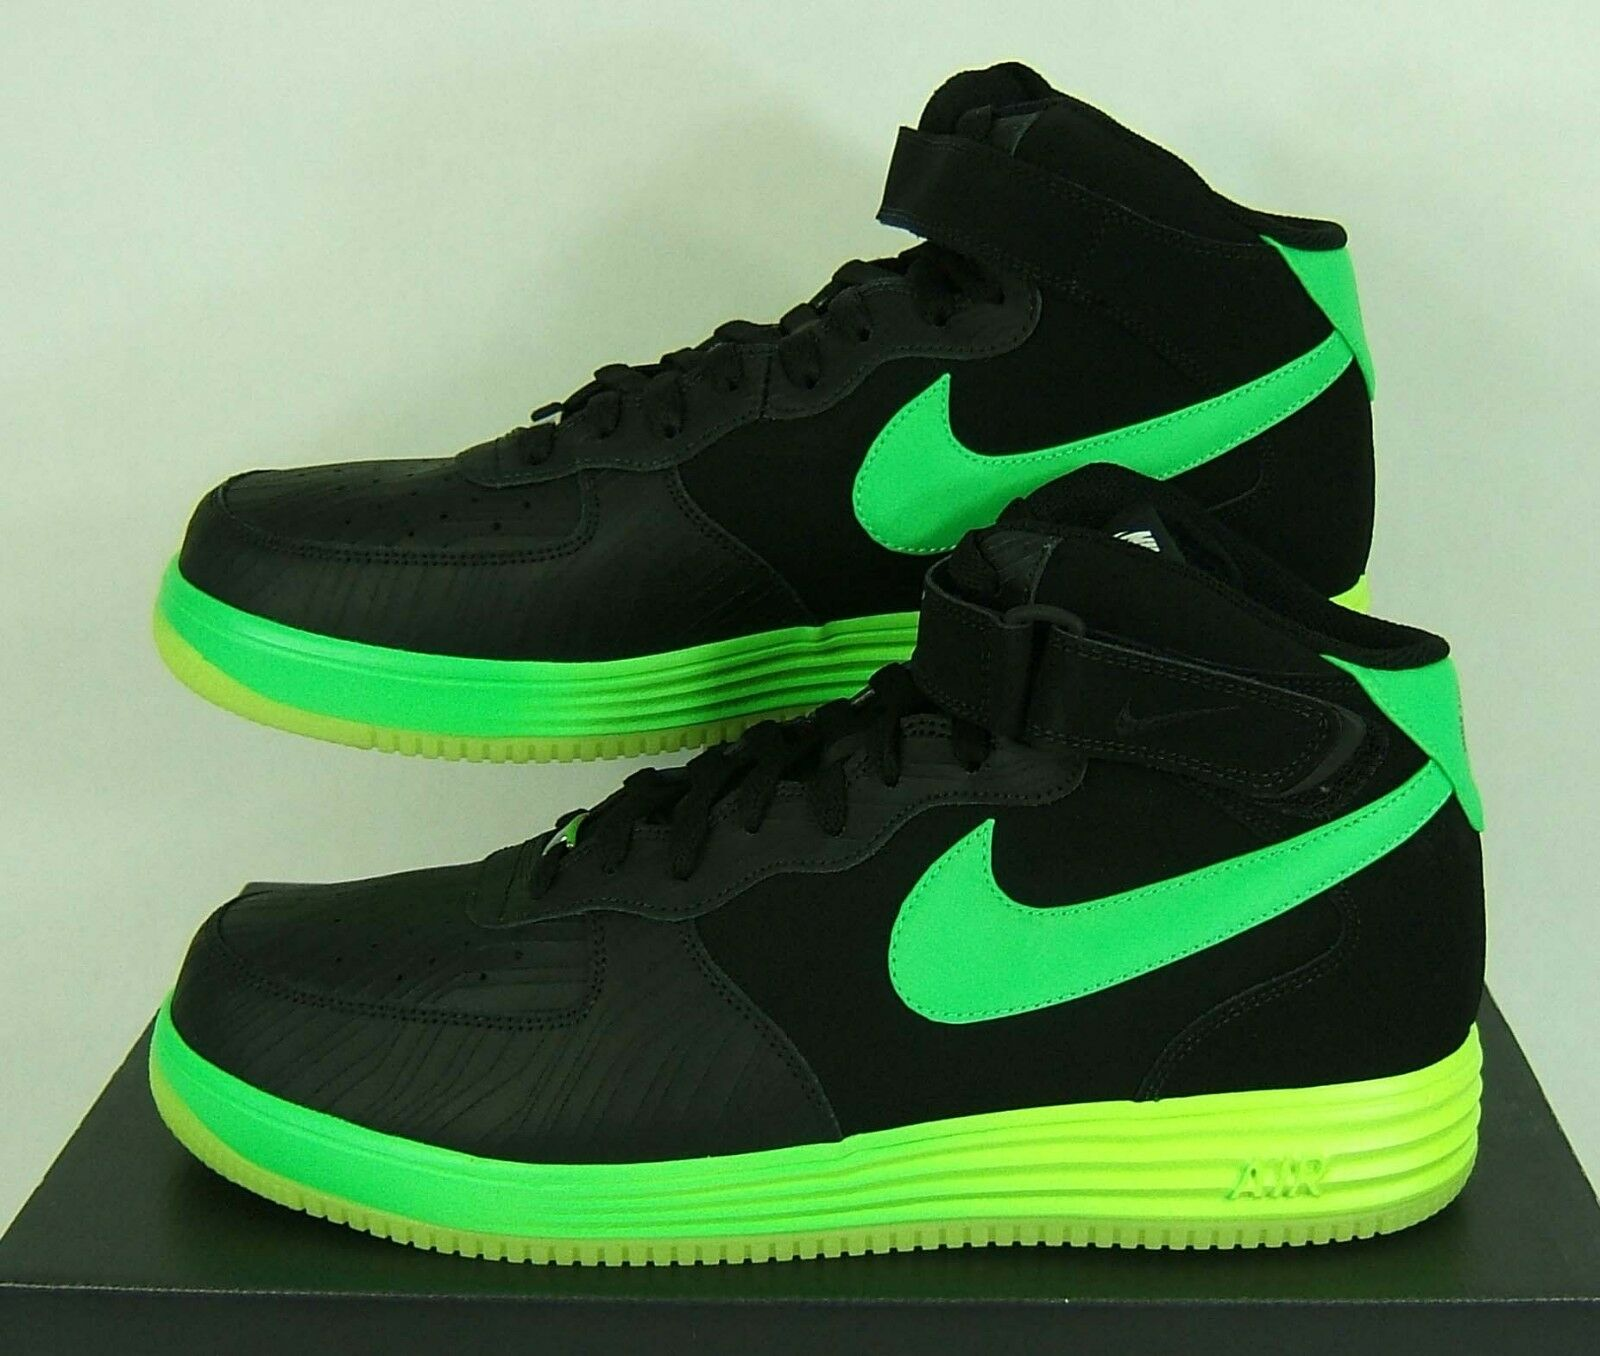 The latest discount shoes for men and women New Mens 14 NIKE Lunar Force 1 LTHR Leather Black Mid Shoes Price reduction